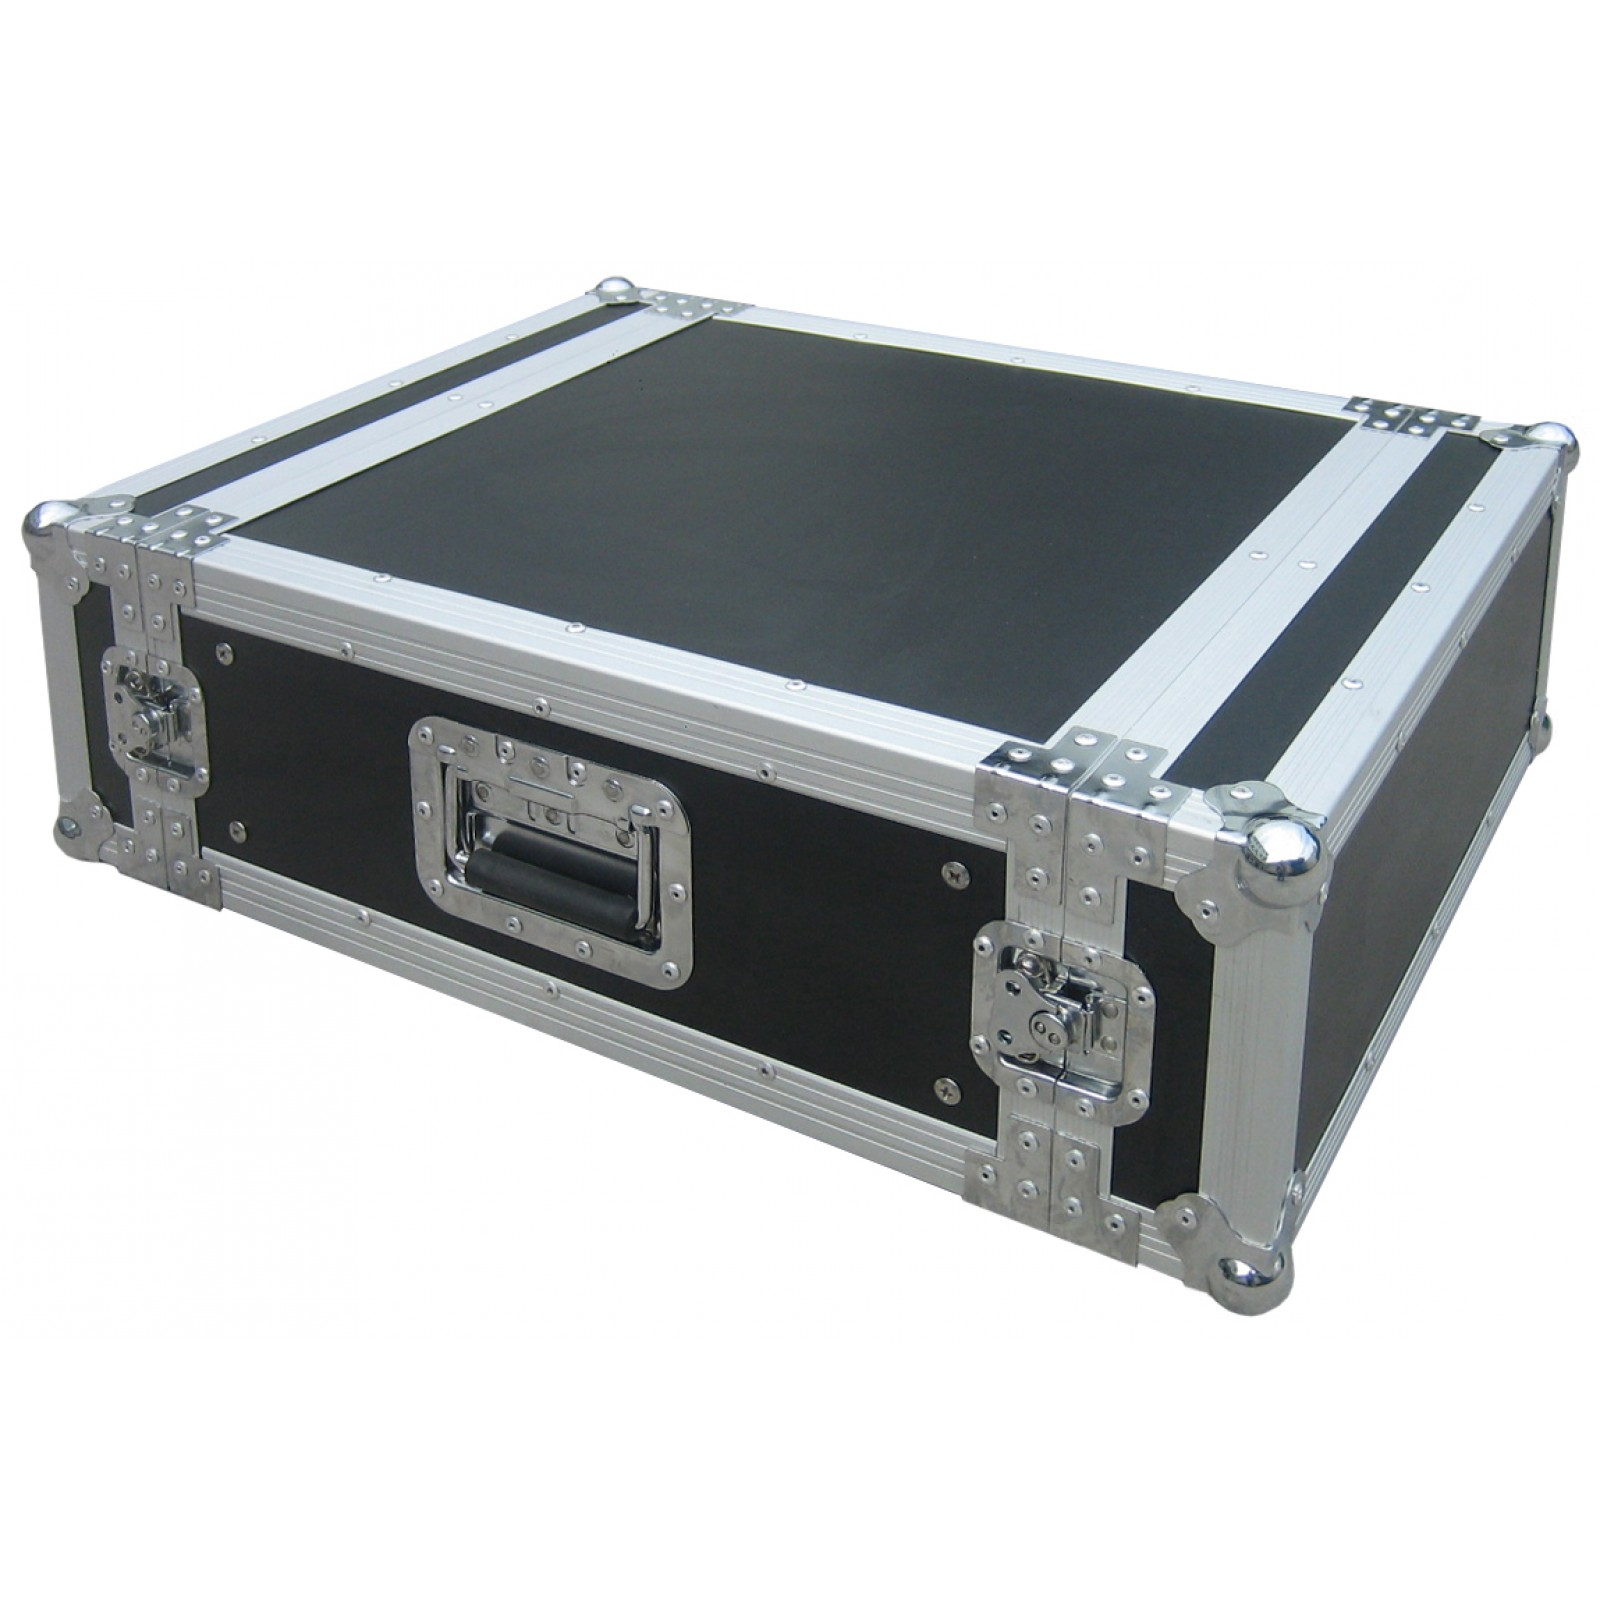 Jb Lighting Varyled A7 Zoom Jb Systems Rack Case 4u Flightcases